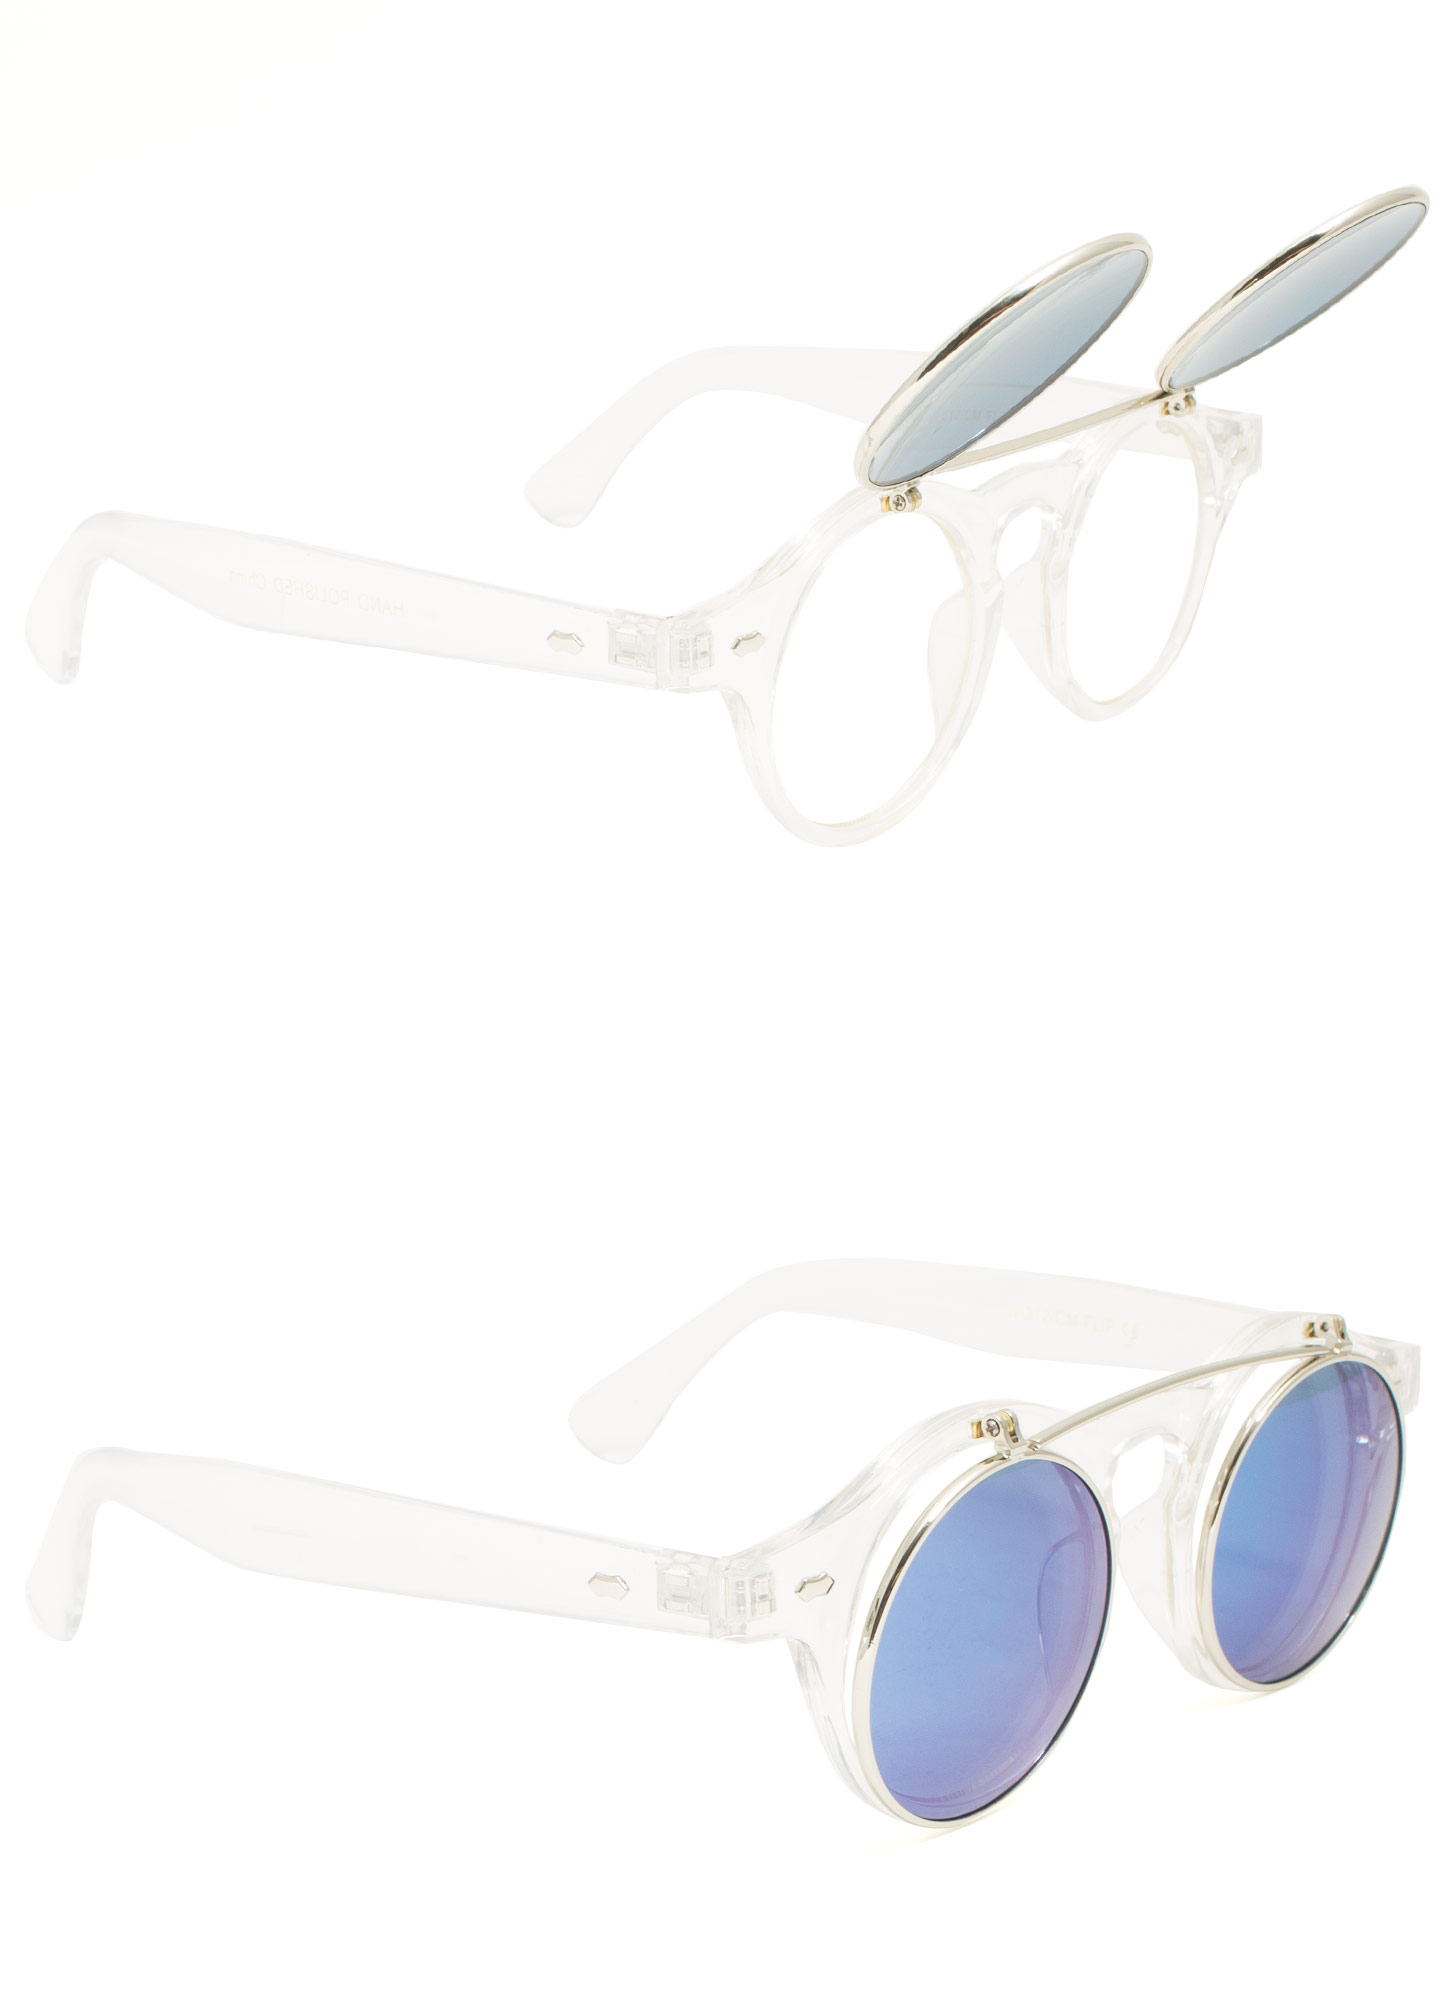 Round Reflective Flip-Up Sunglasses BLUECLEAR